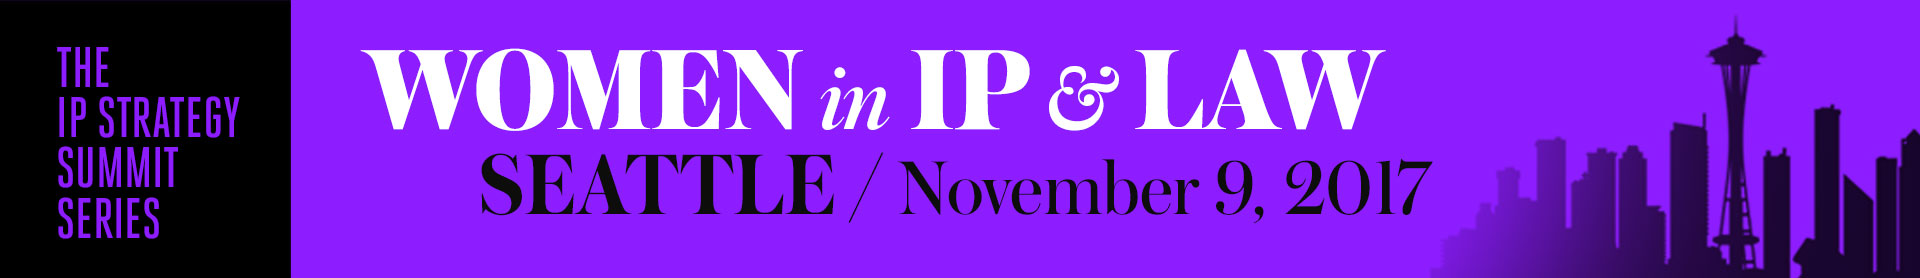 The Women in IP & Law Summit: Seattle 2017